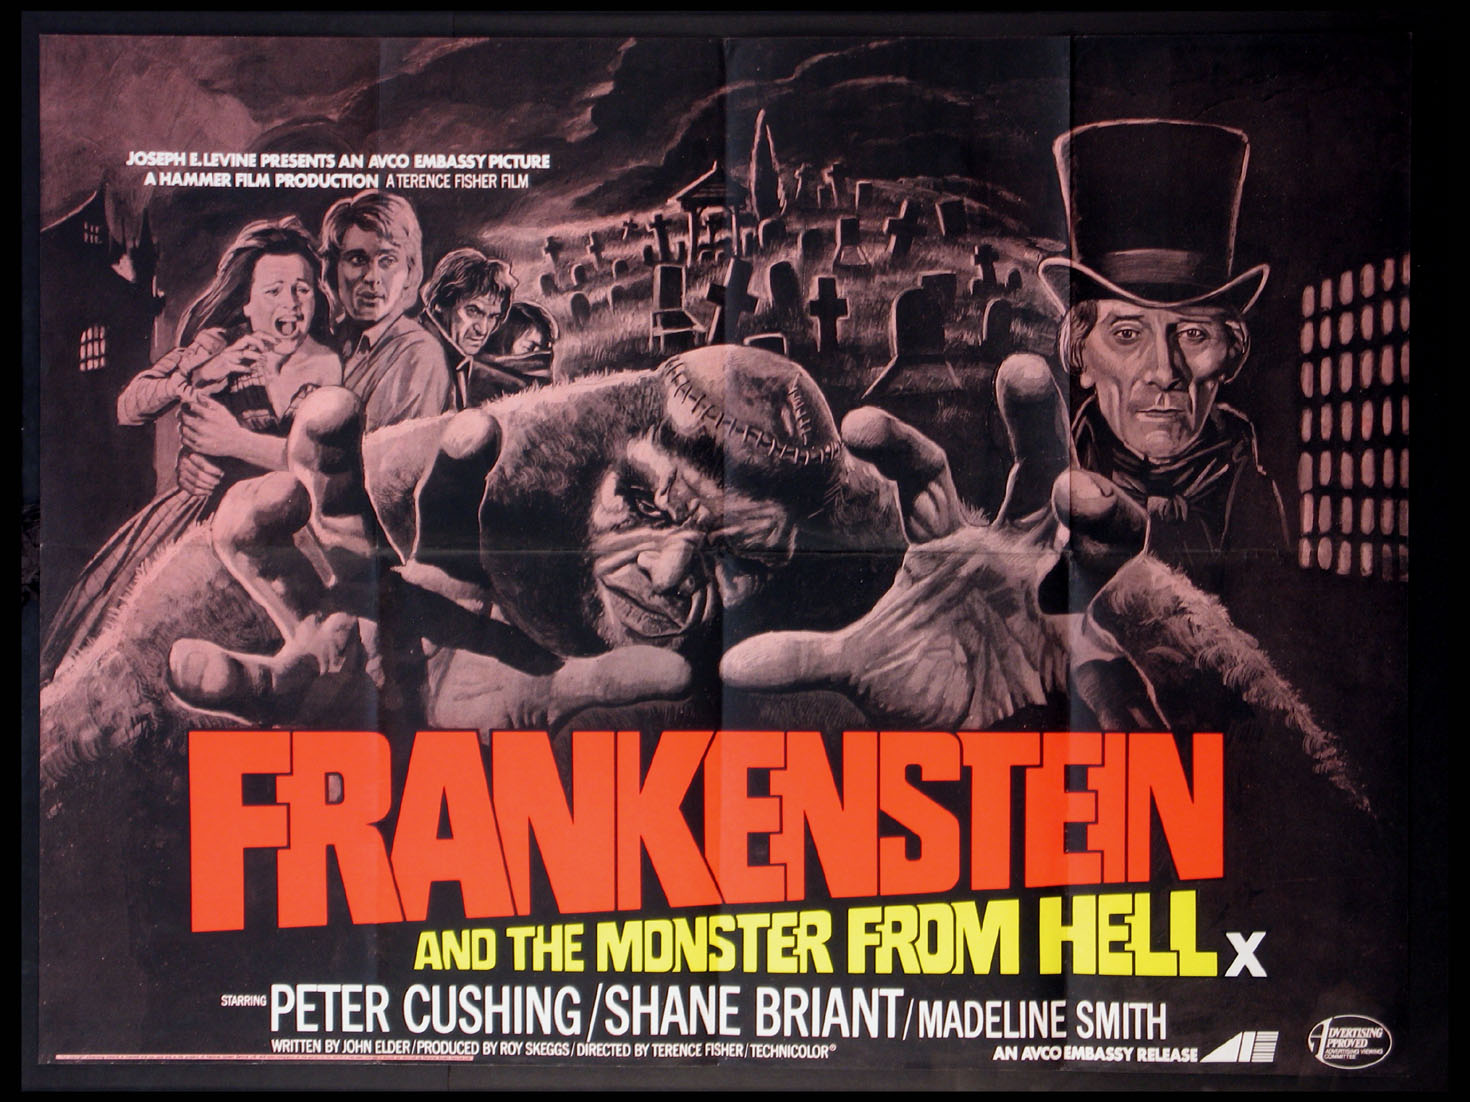 FRANKENSTEIN AND THE MONSTER FROM HELL @ FilmPosters.com